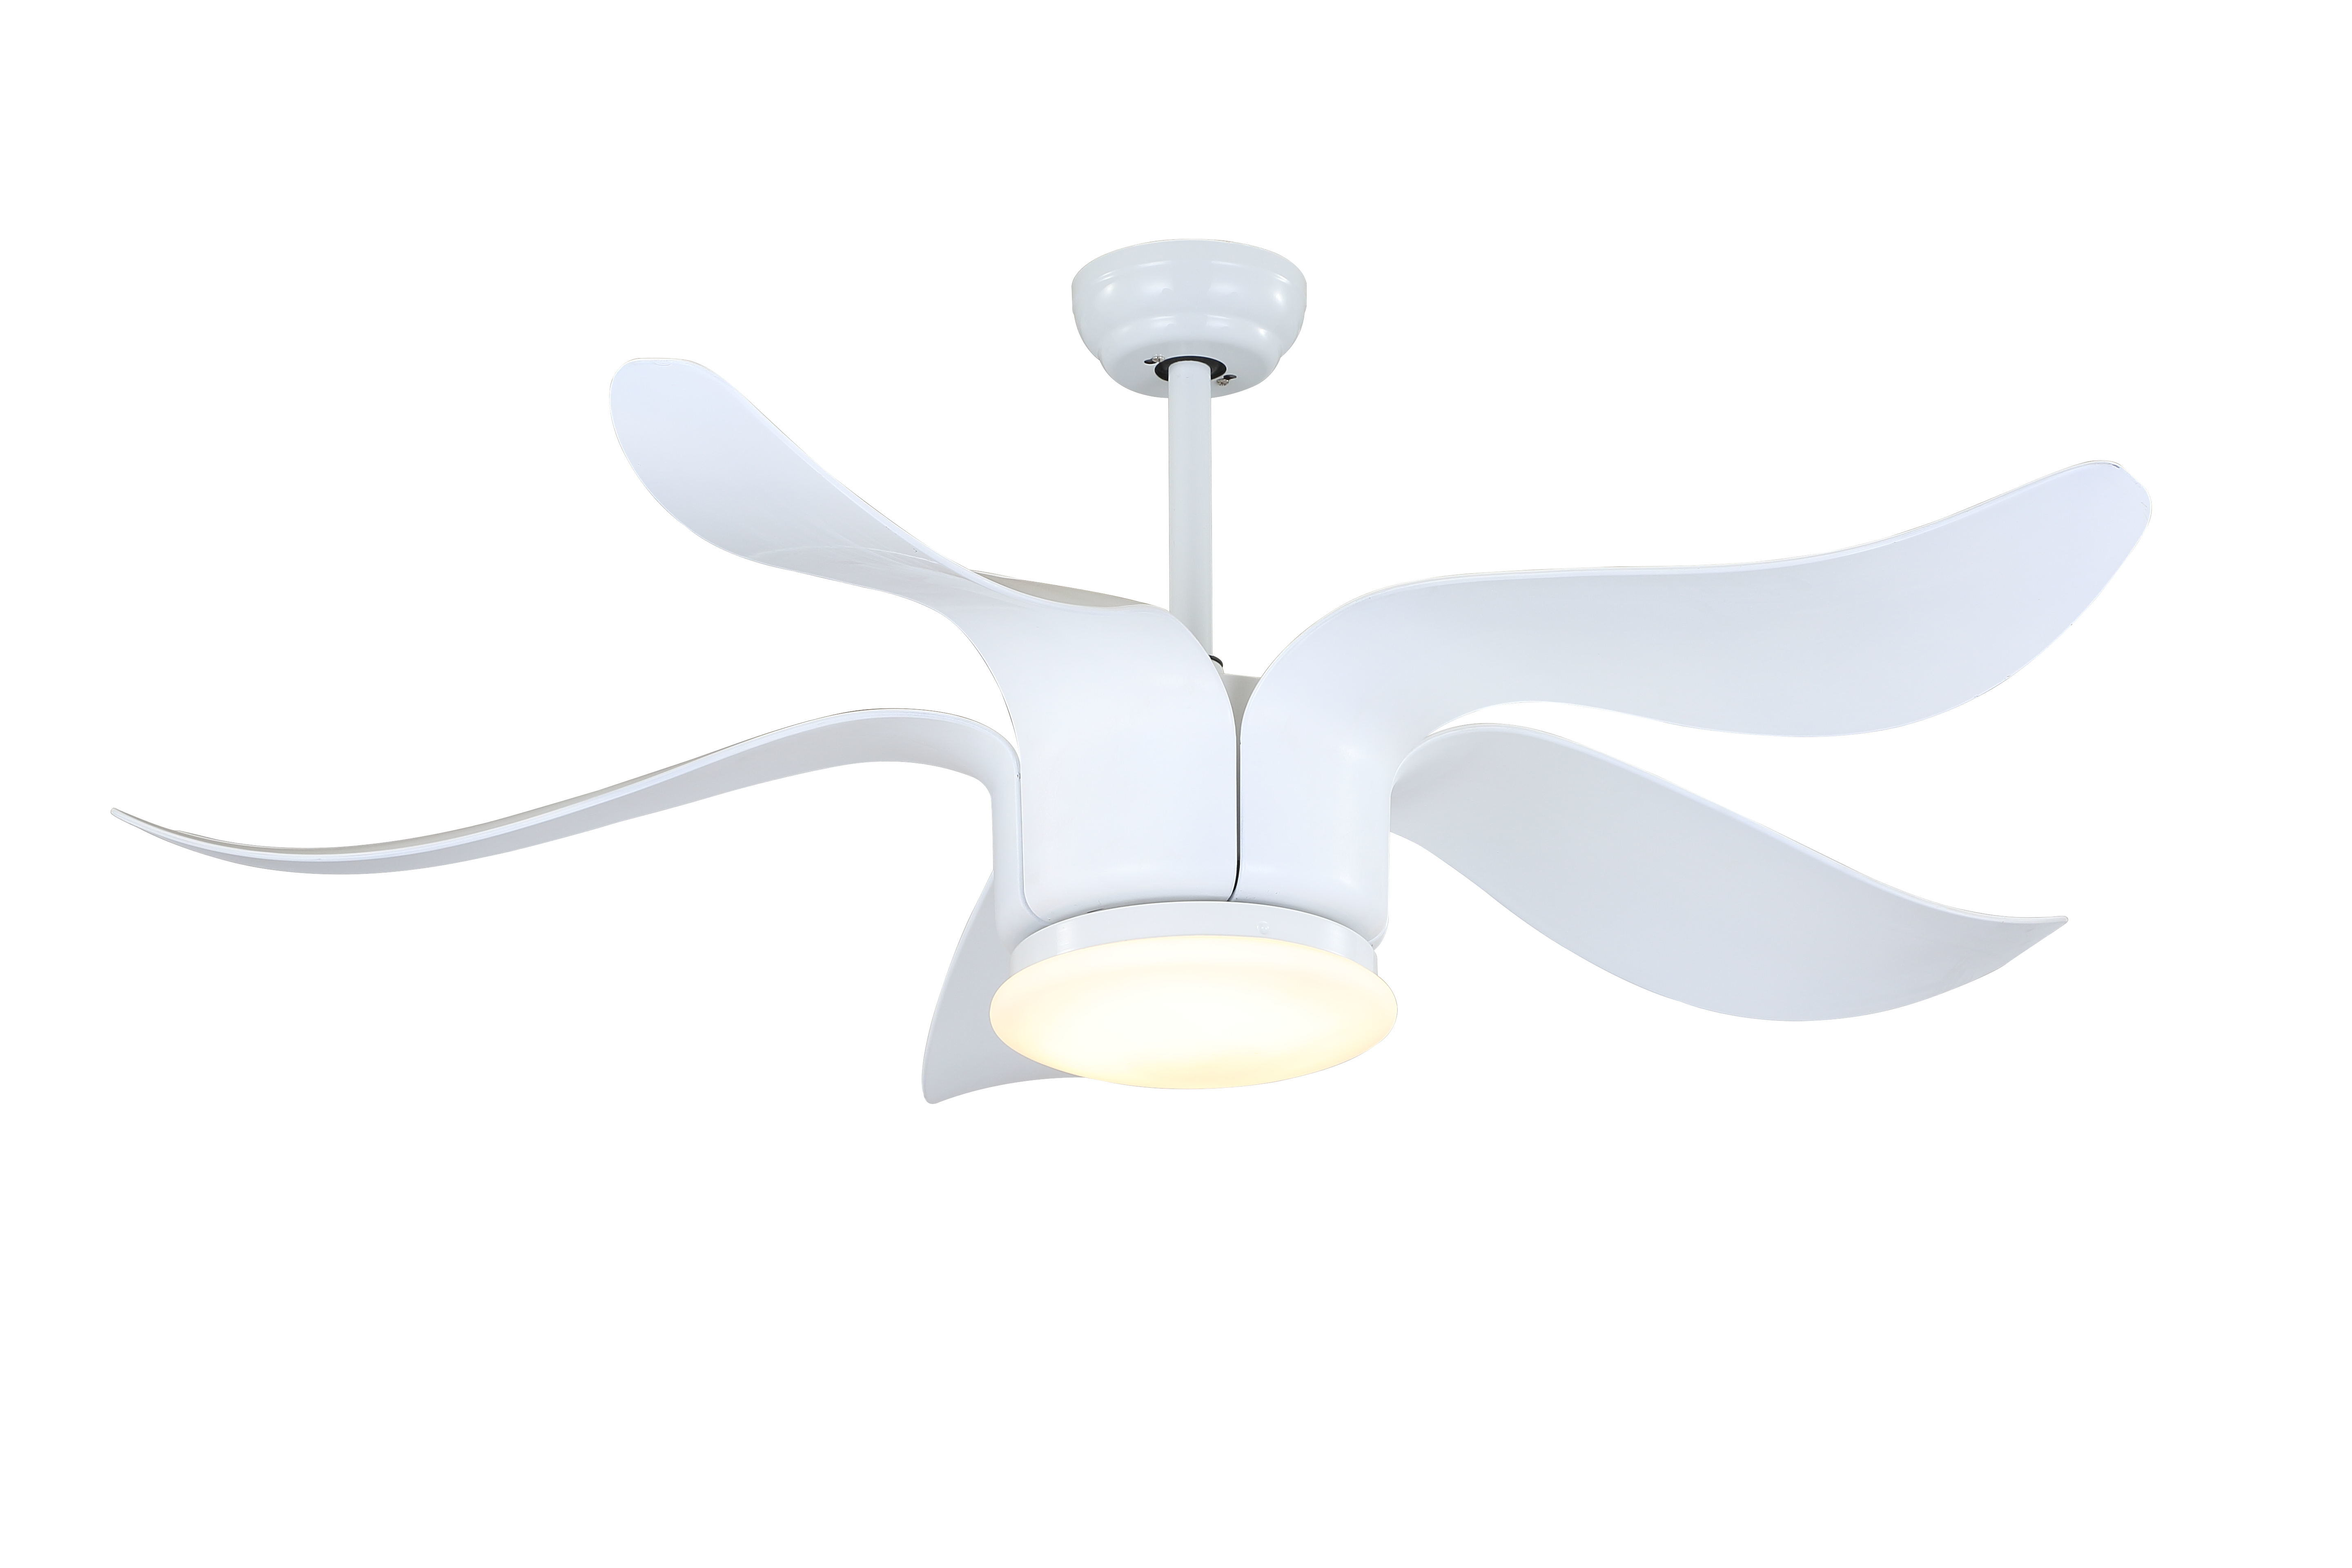 category dc fanco product ceiling fan singapore kdk inch motor ceilings